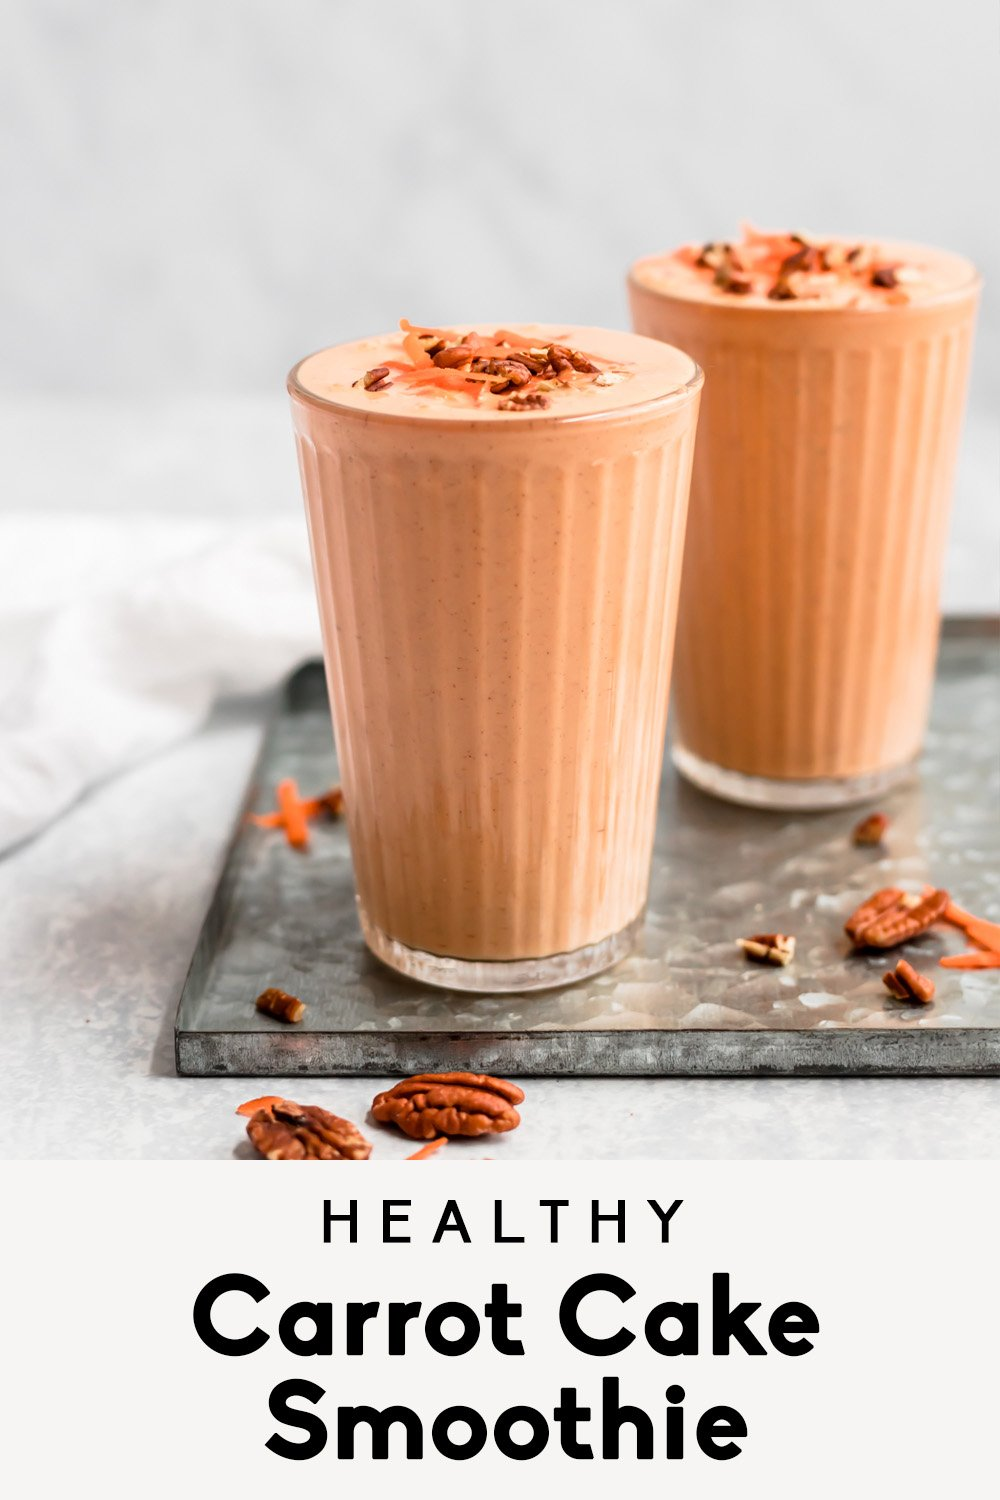 carrot cake smoothie with text overlay